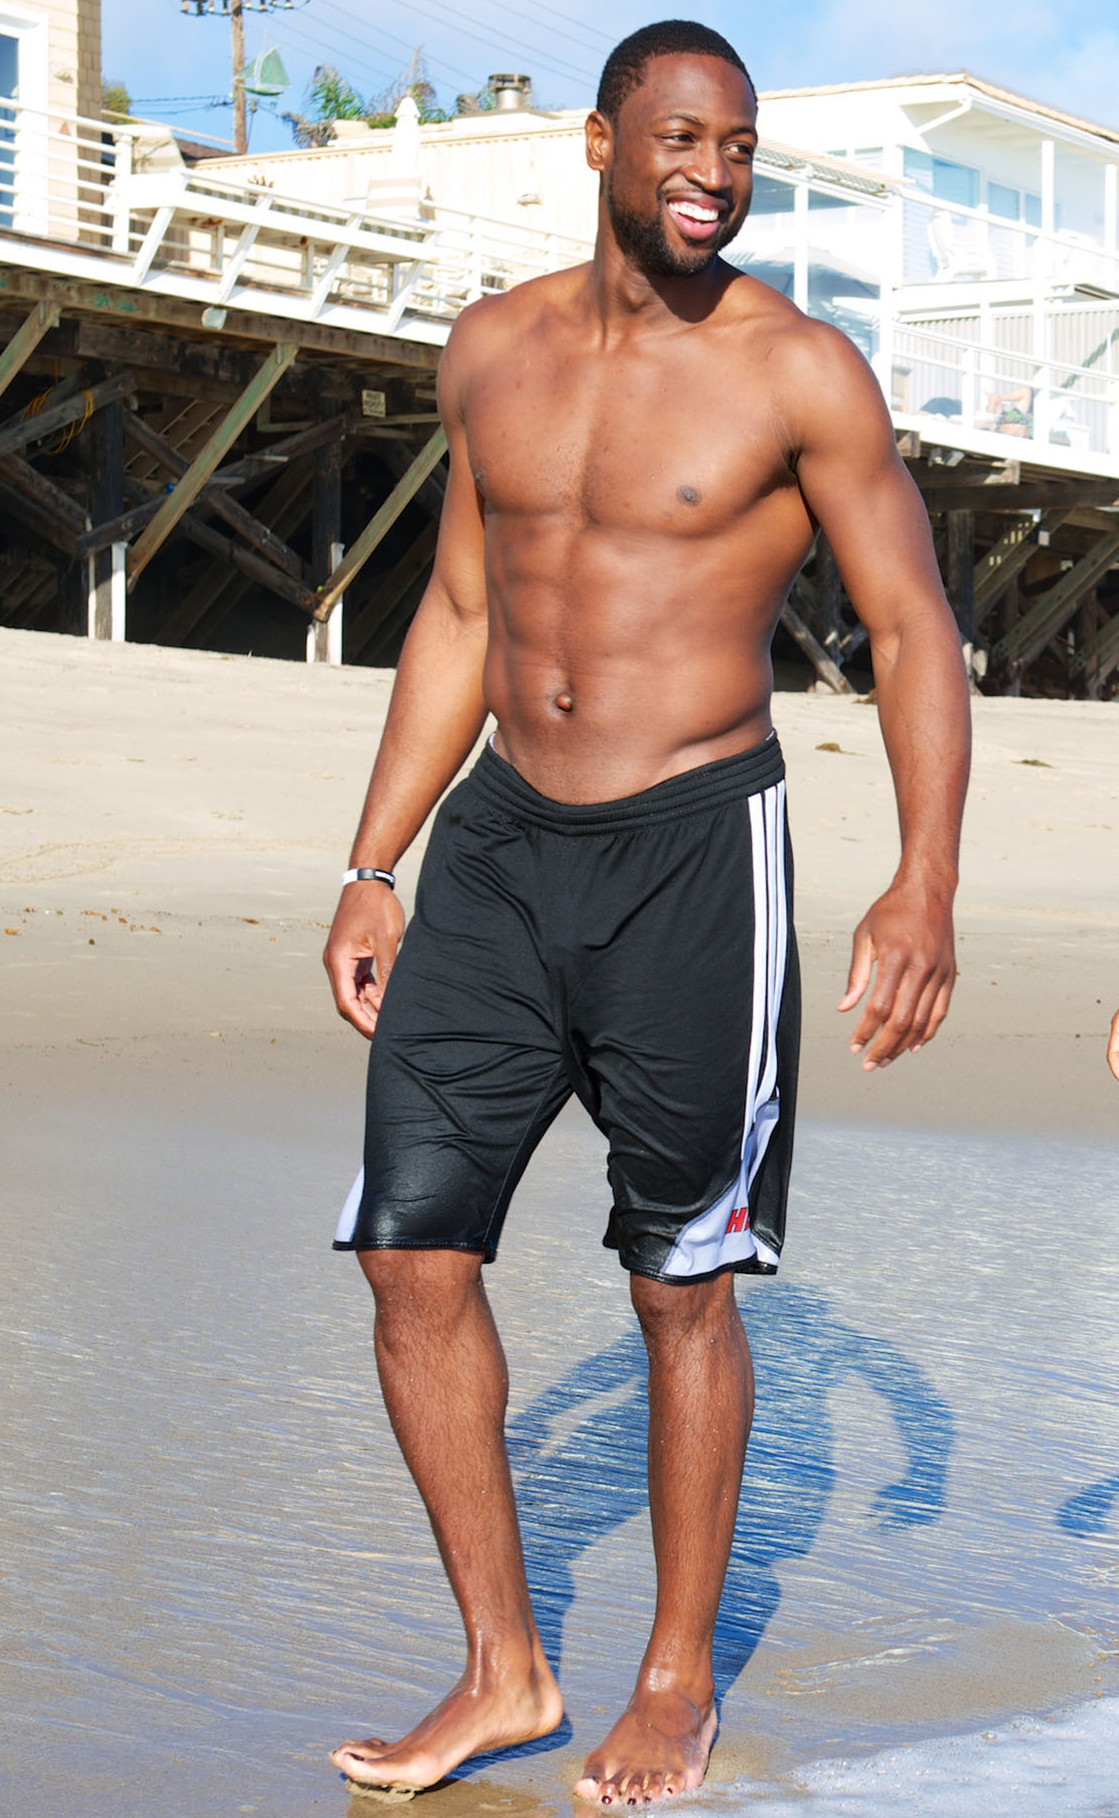 In September, Dwyane Wade was all smiles shirtless on the beach in Malibu.